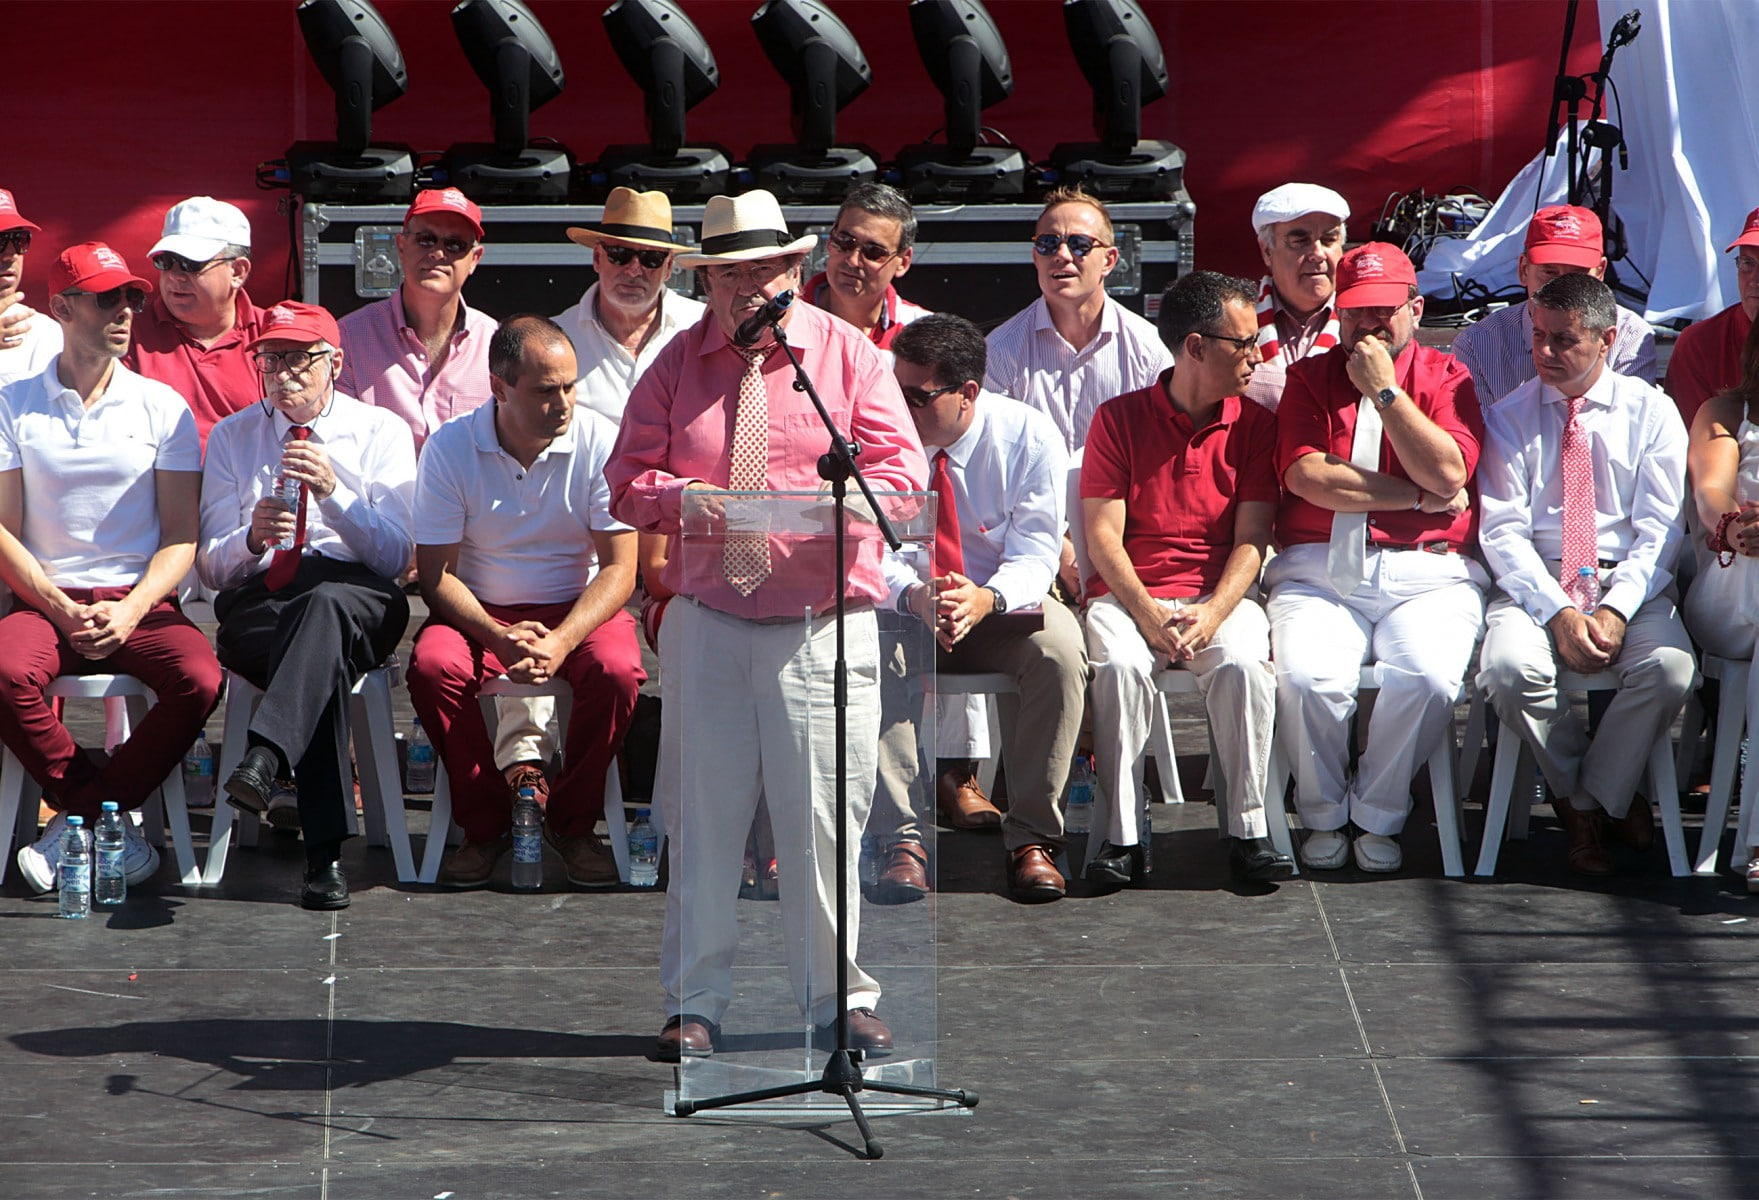 160910-national-day-gibraltar-2016-14_29605156535_o